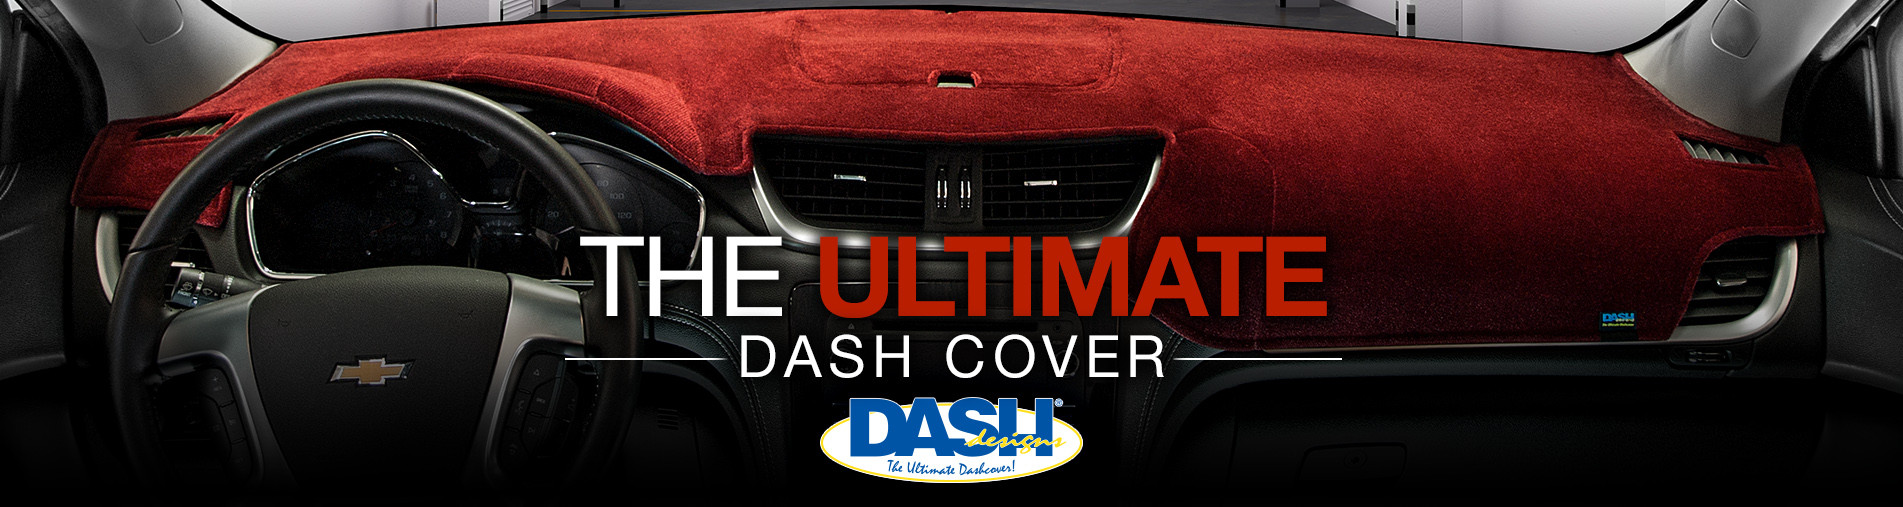 The Ultimate Dash Cover